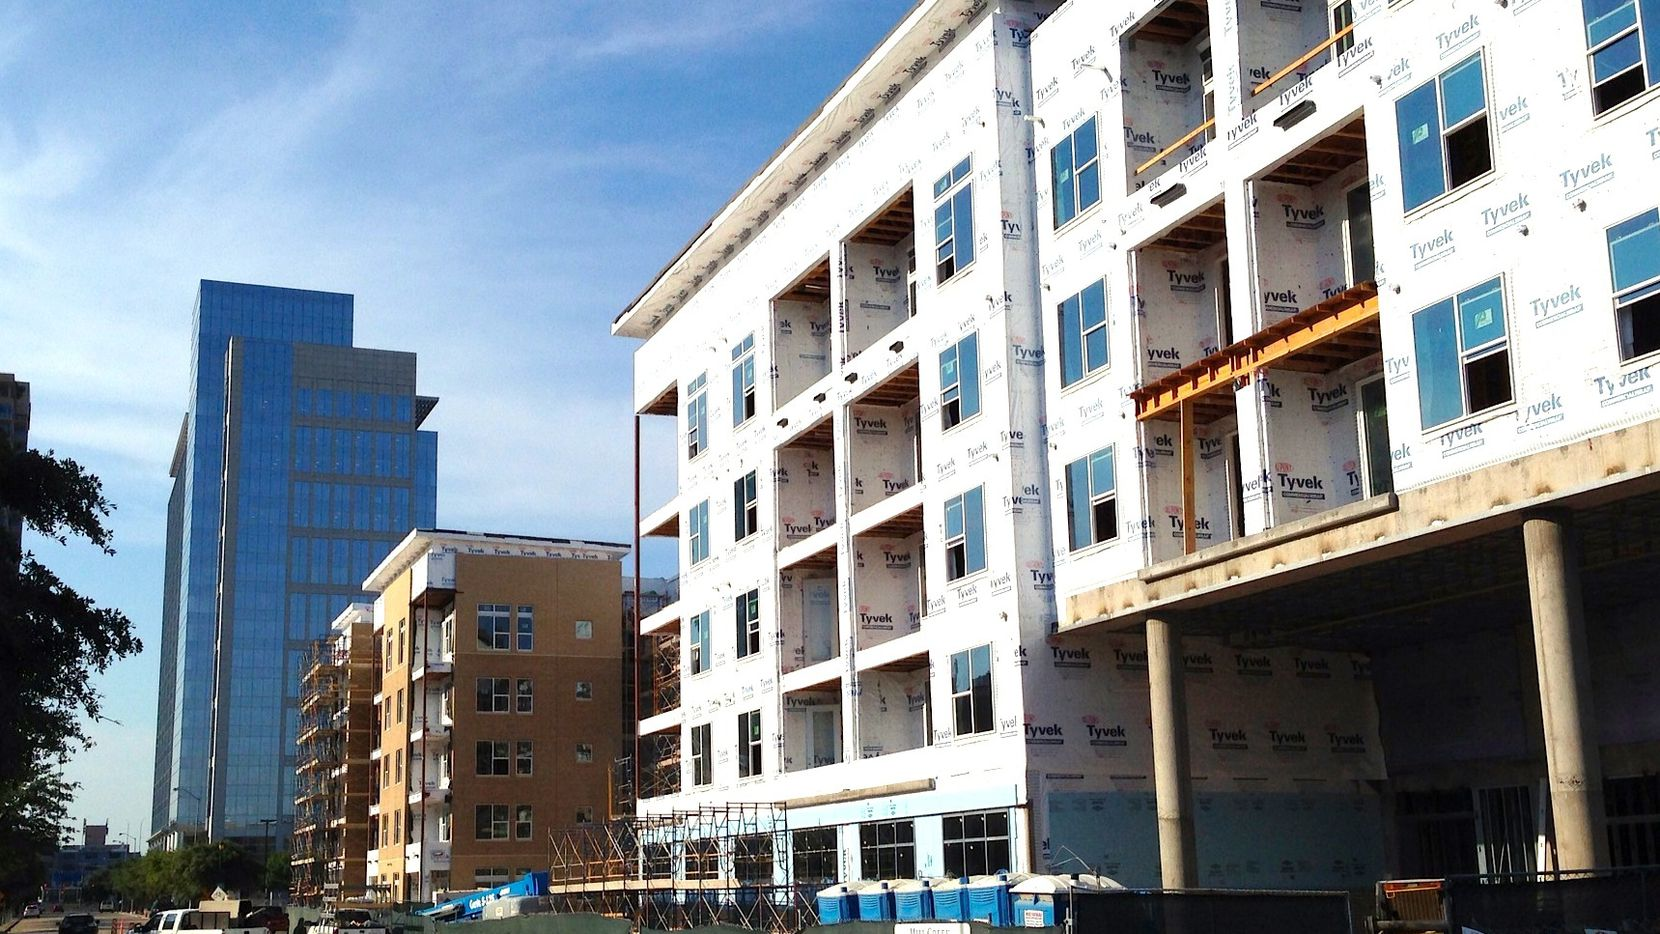 More than 40,000 apartments are being built in North Texas.